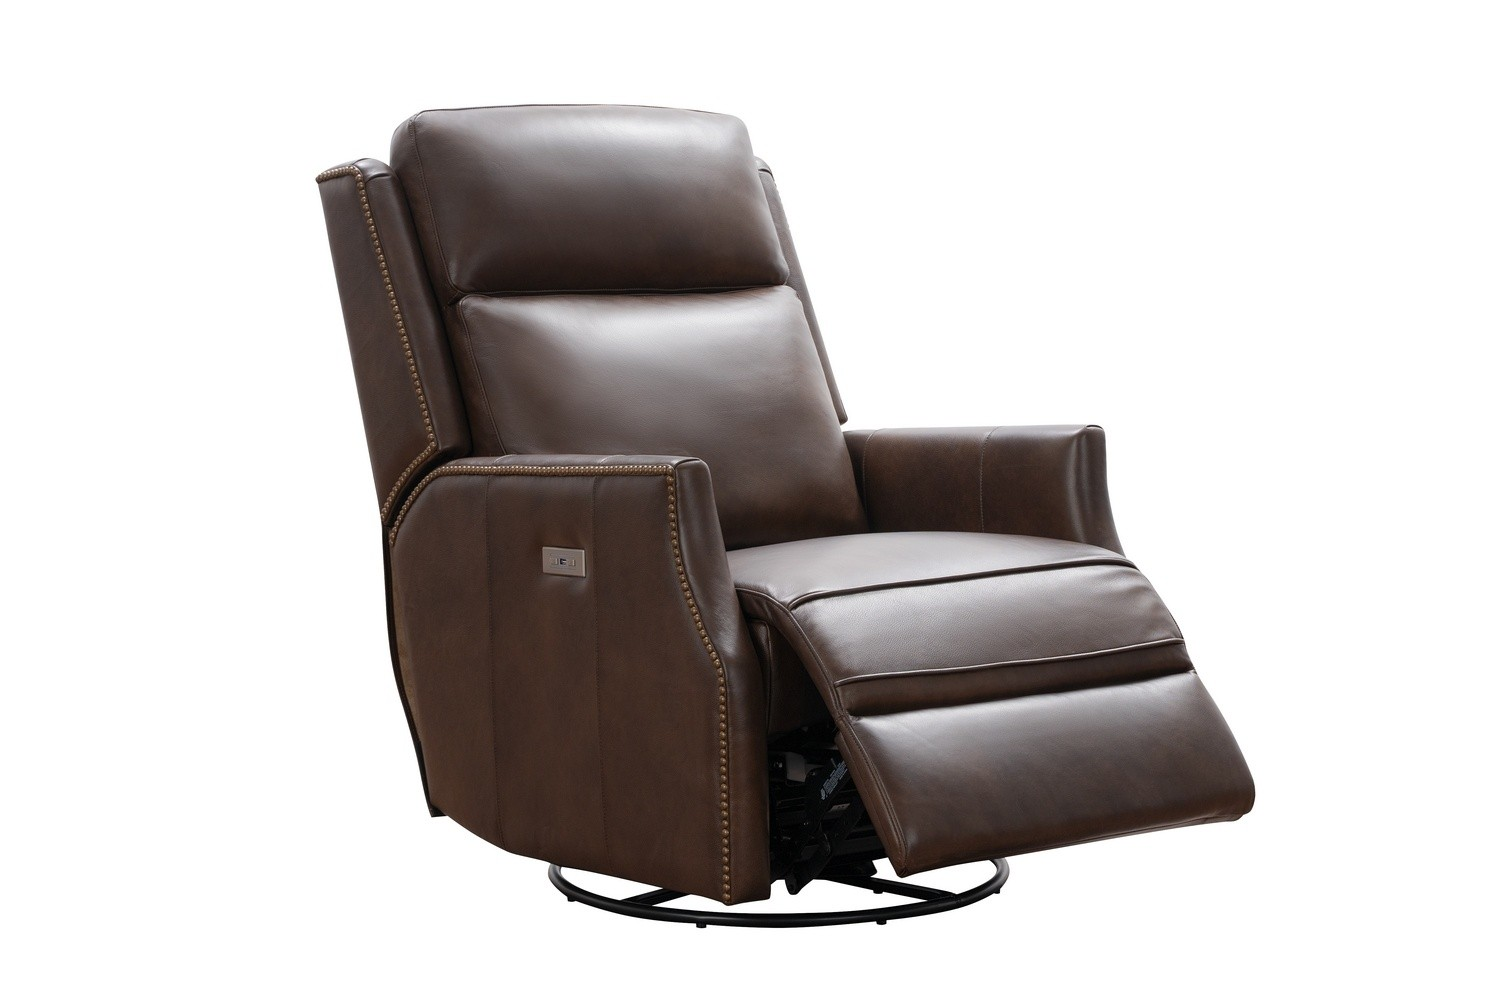 Barcalounger Cavill Swivel Glider Recliner Chair with Power Recline and Power Head Rest - Ashford Walnut/All Leather